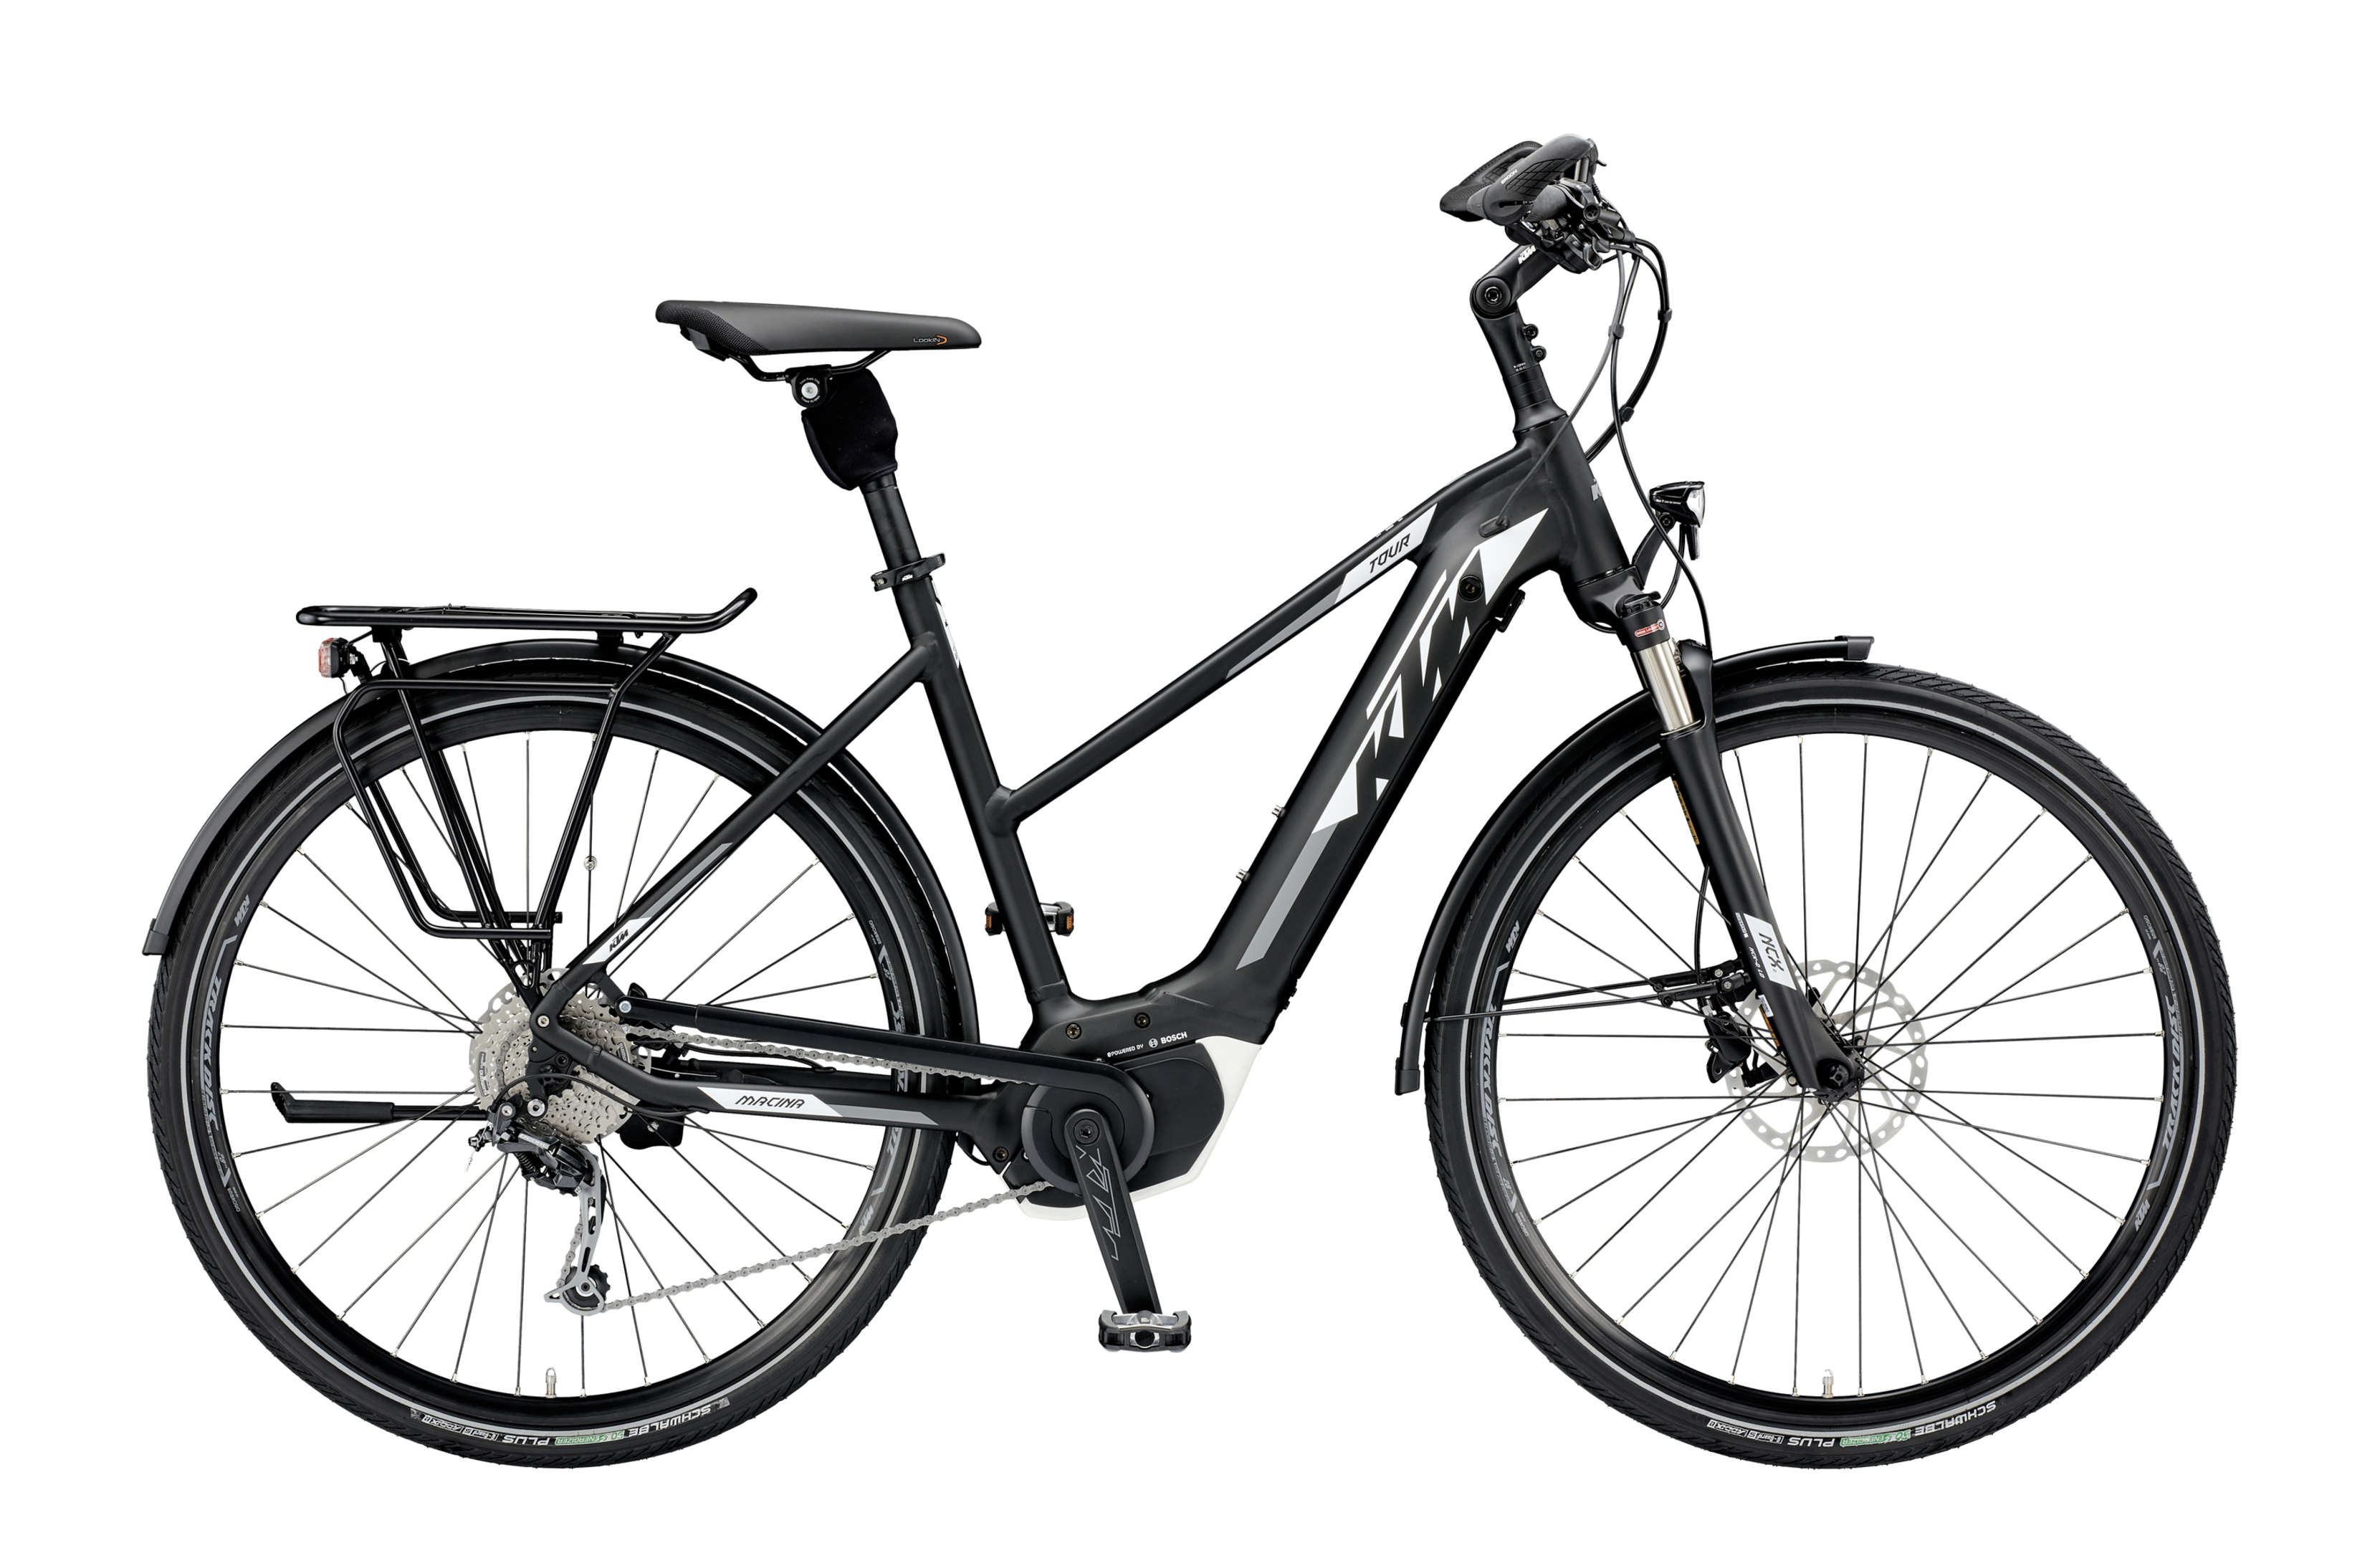 KTM E-Bike Macina Tour 9 pt-cx5i4